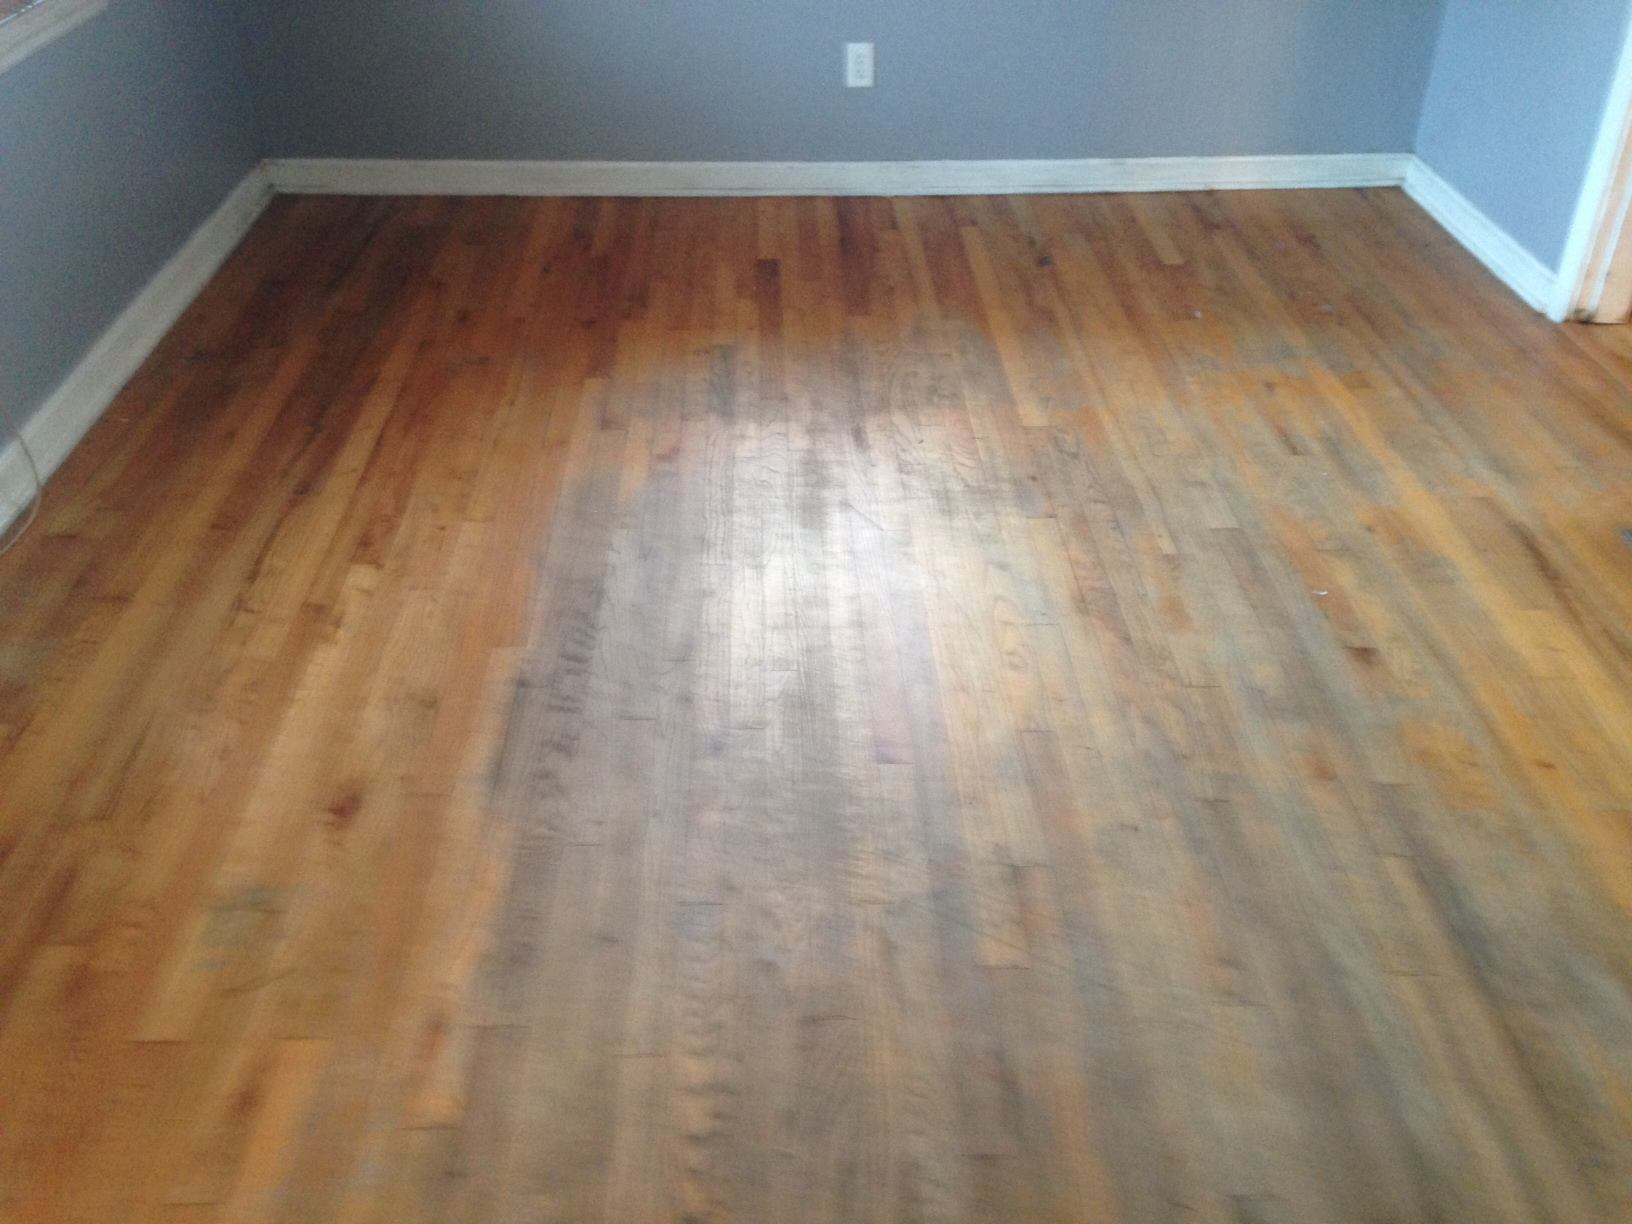 Wood floors jacksonville fl maison design for Hardwood floors jacksonville fl